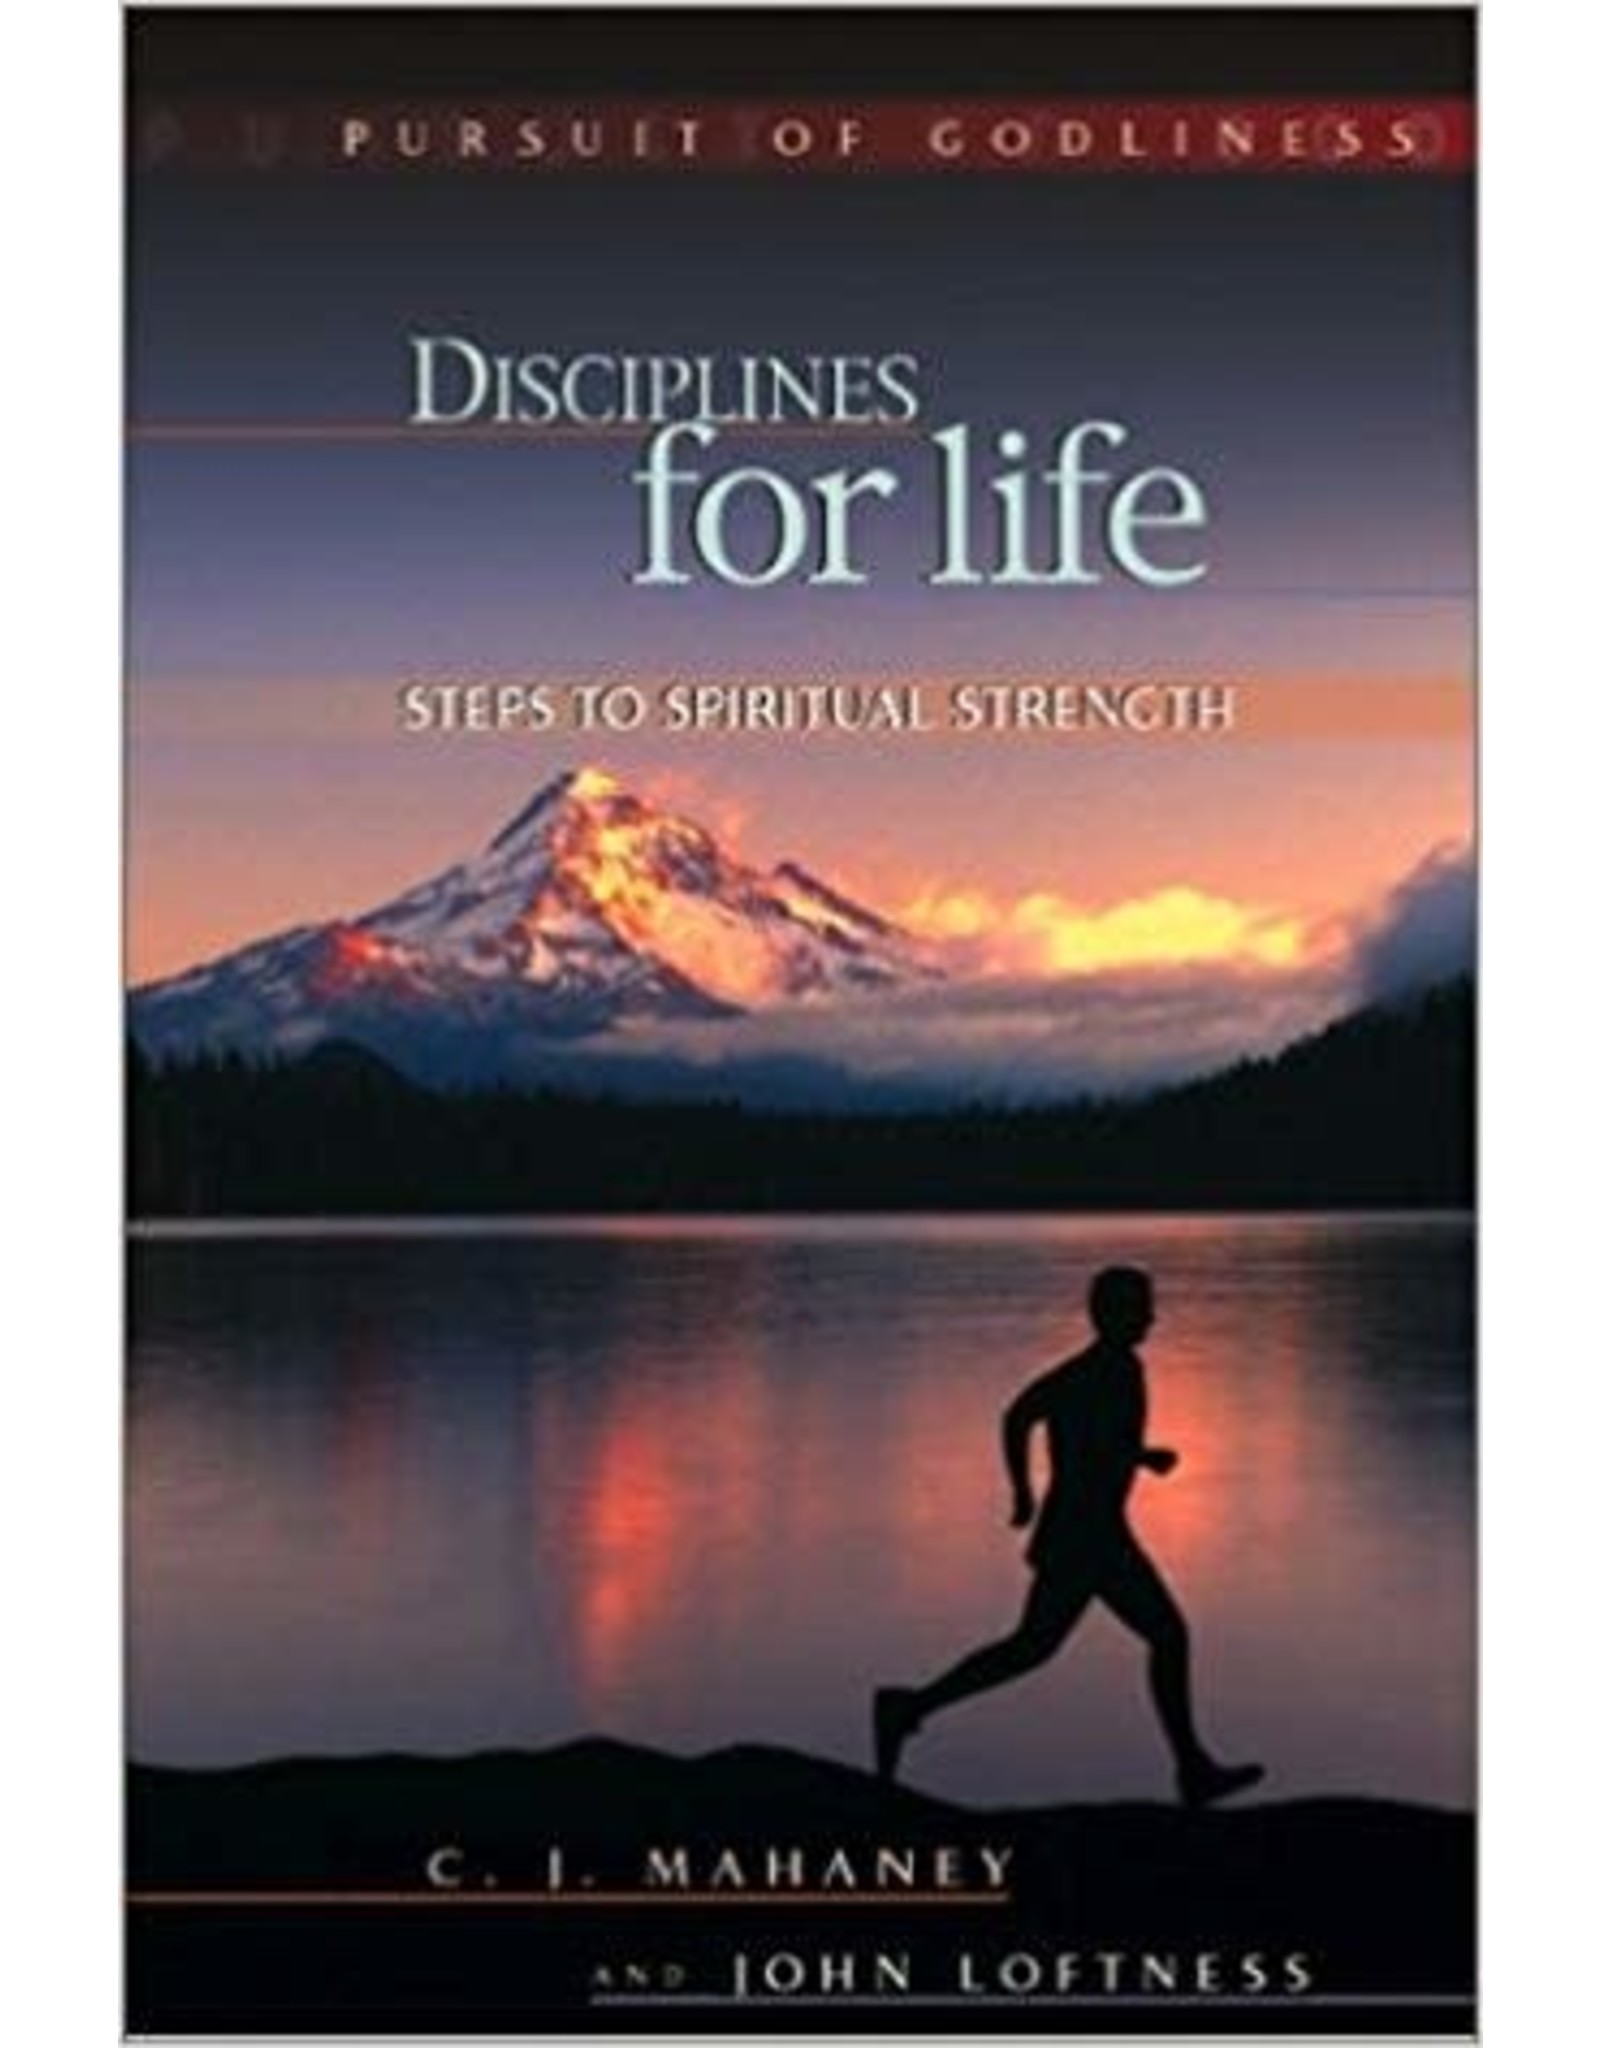 Mahaney Disciplines for Life